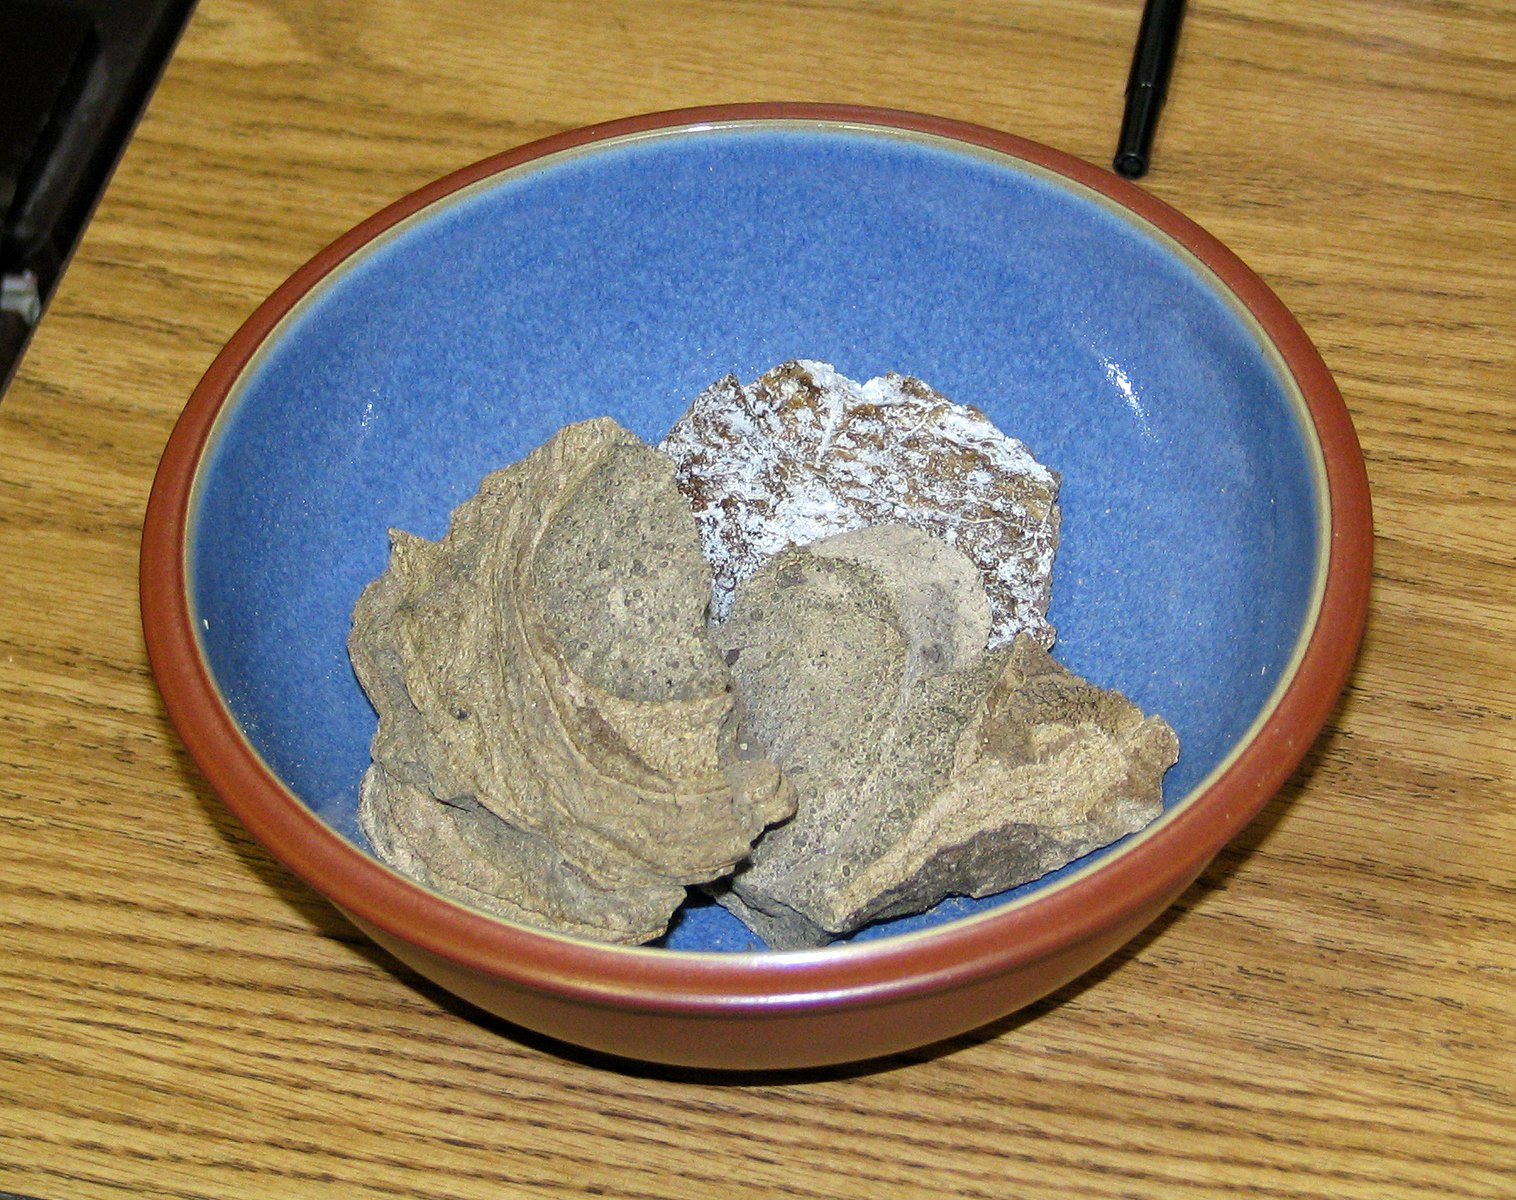 An example of whale vomit, or ambergris, which is often used to make perfume and is highly valuable. (Wikipedia)